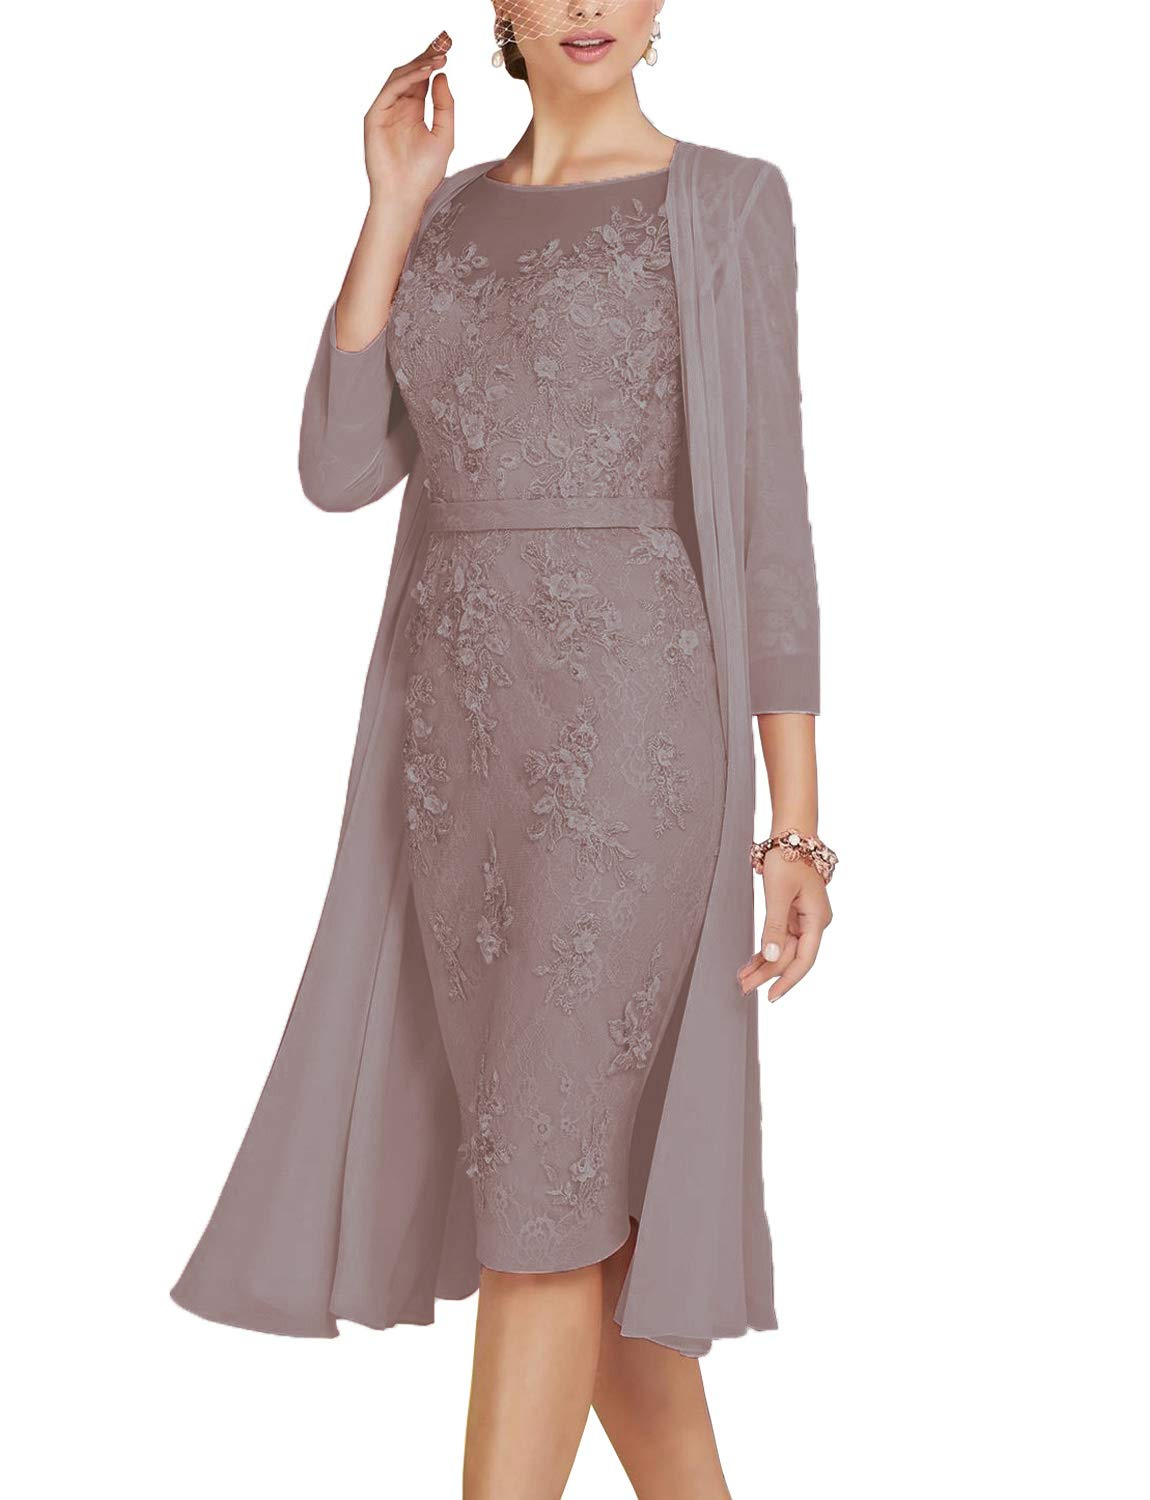 4637a757ee8c80 Mother Of The Bride Dresses With Jackets Amazon – DACC